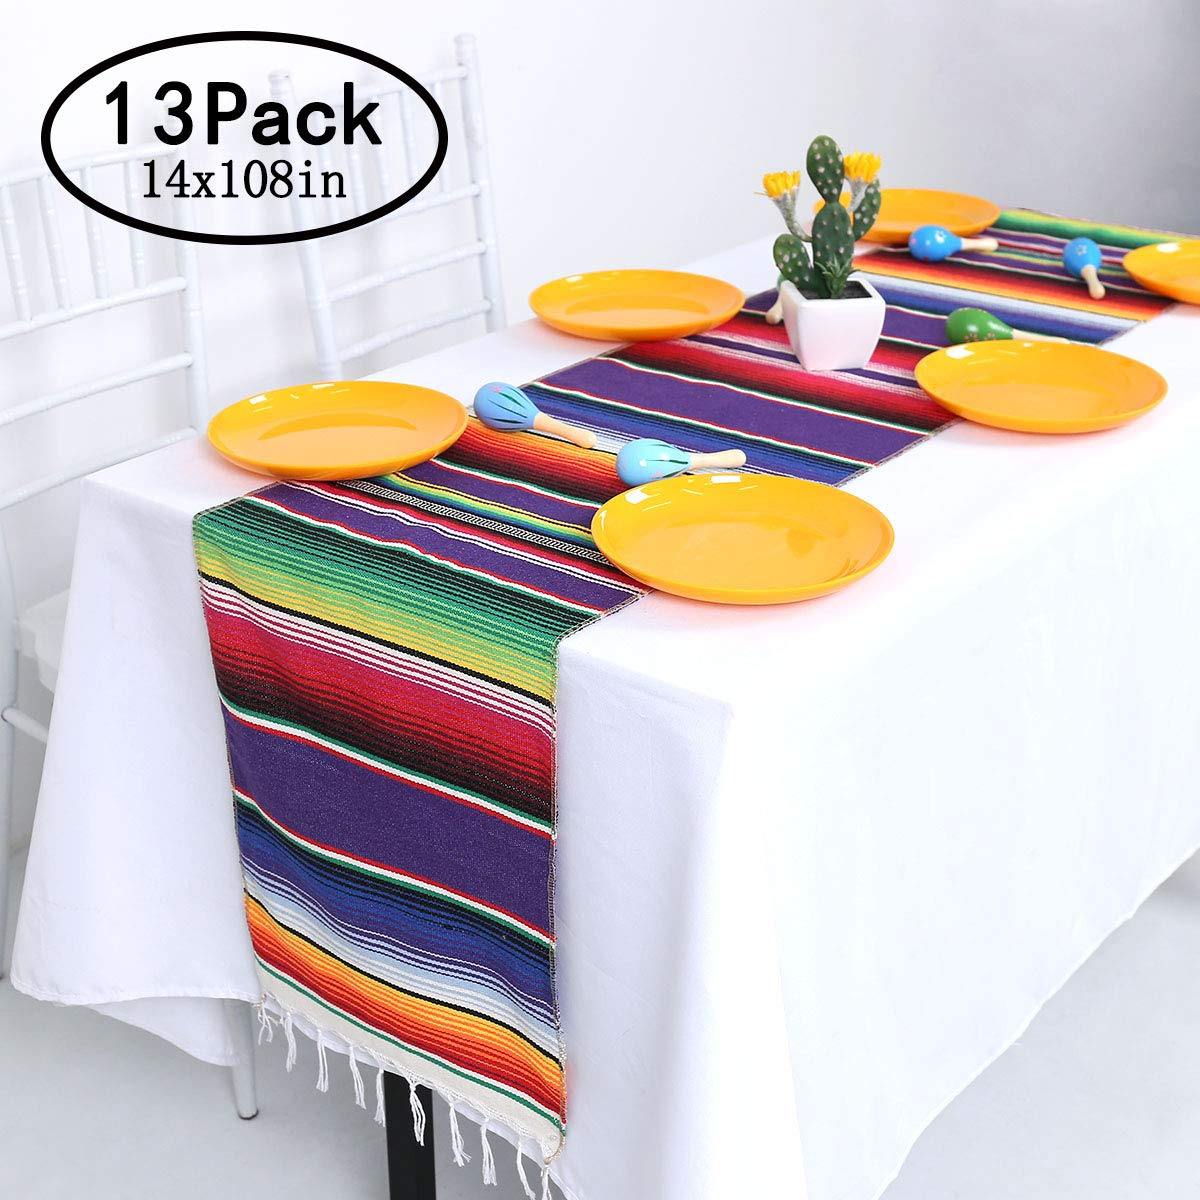 Helaku Mexican Table Runner Mexican Runner for Mexican Fiesta Party Decorations 13 Pack 14x108inches by Helaku